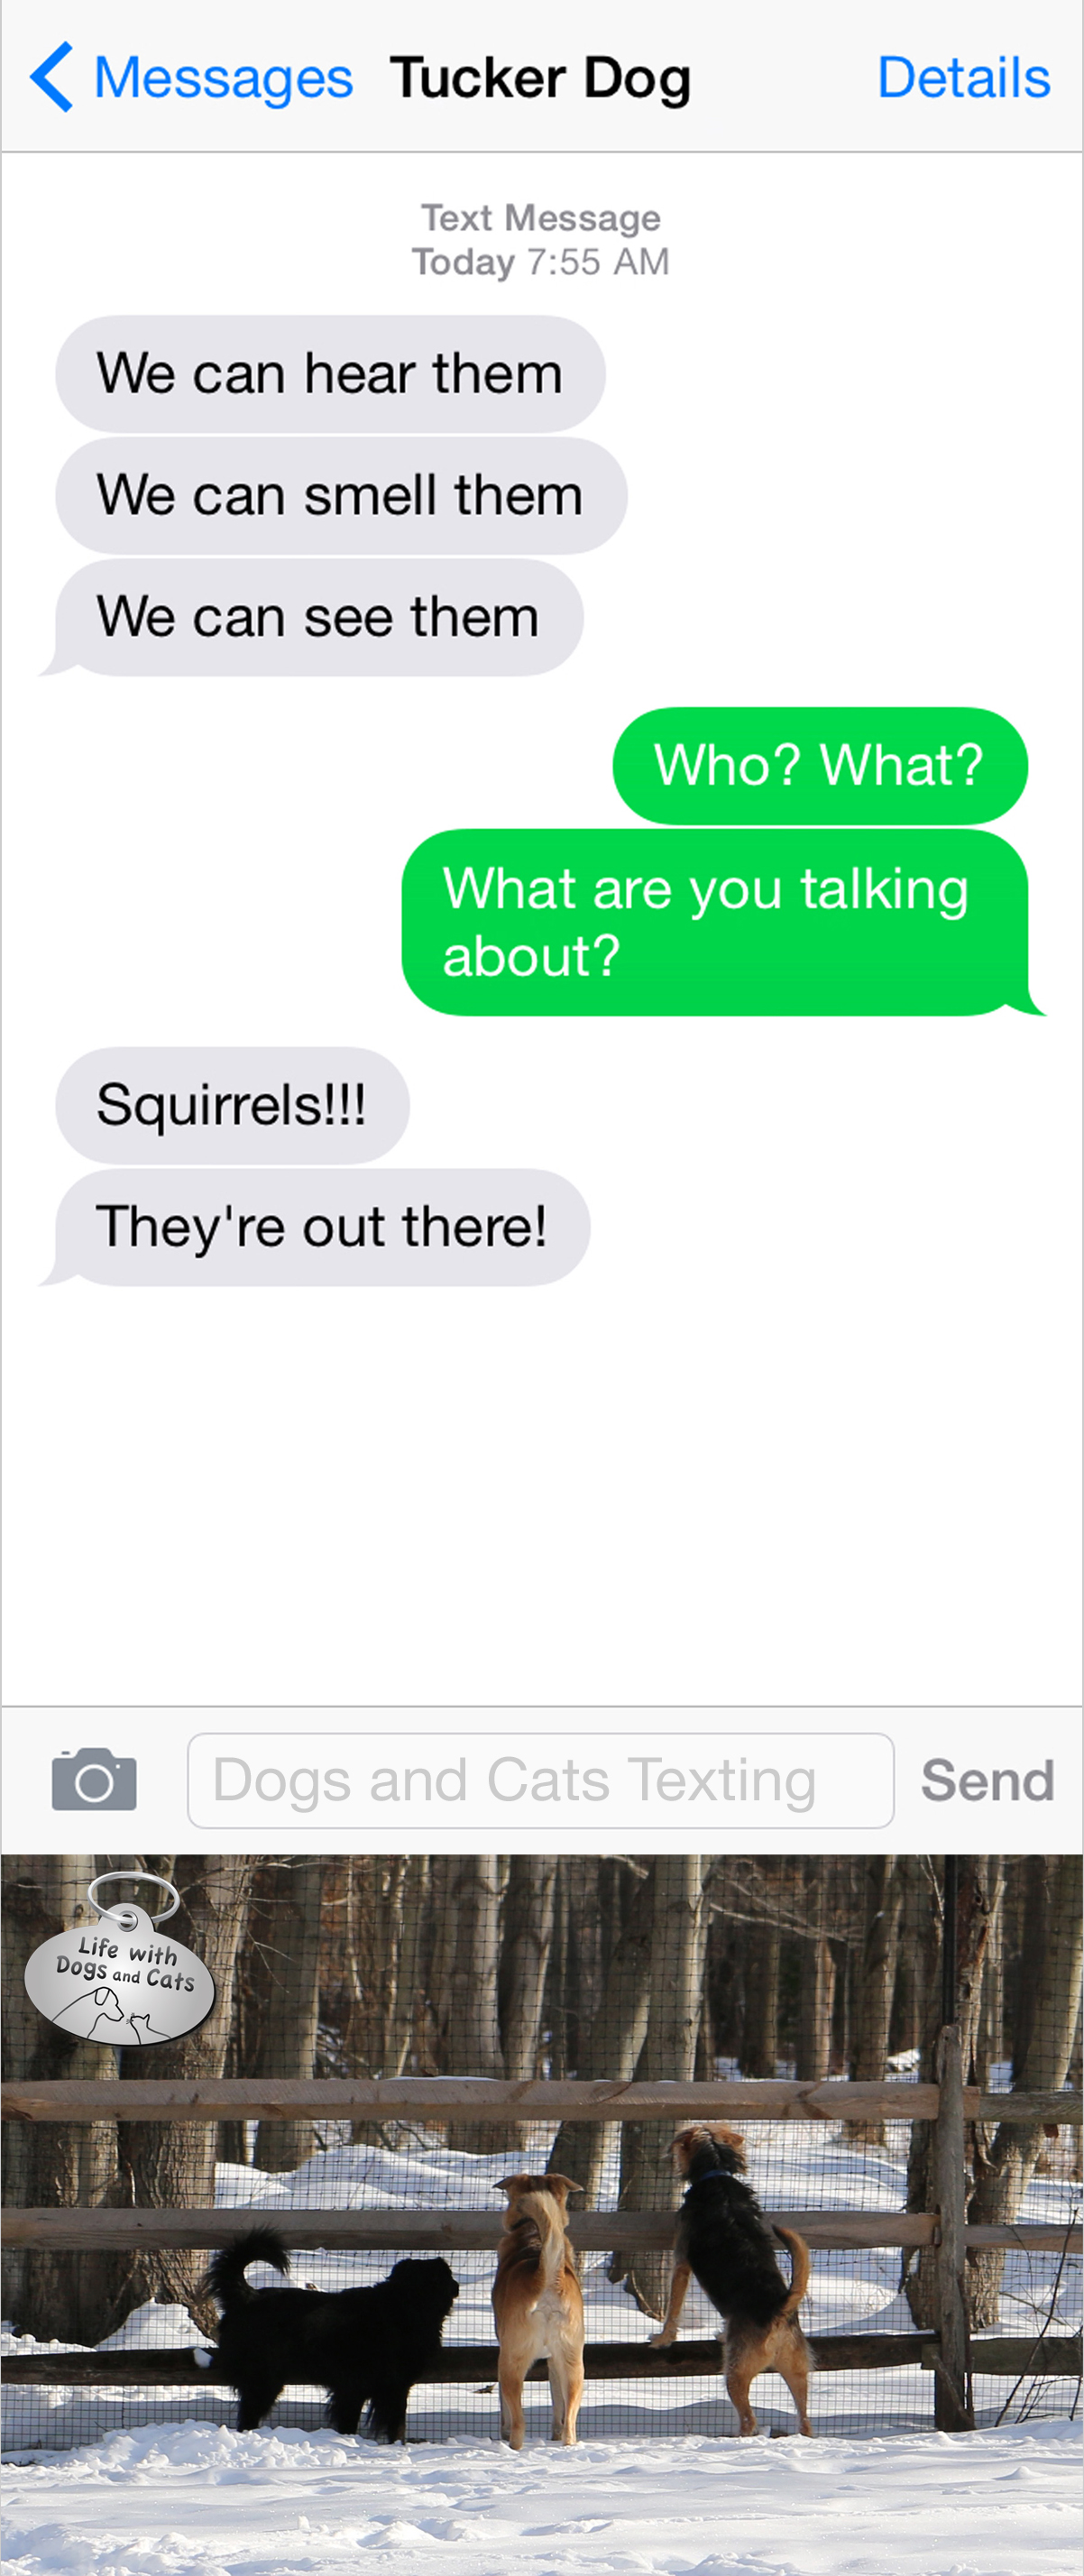 Text from Dog: They're out there!